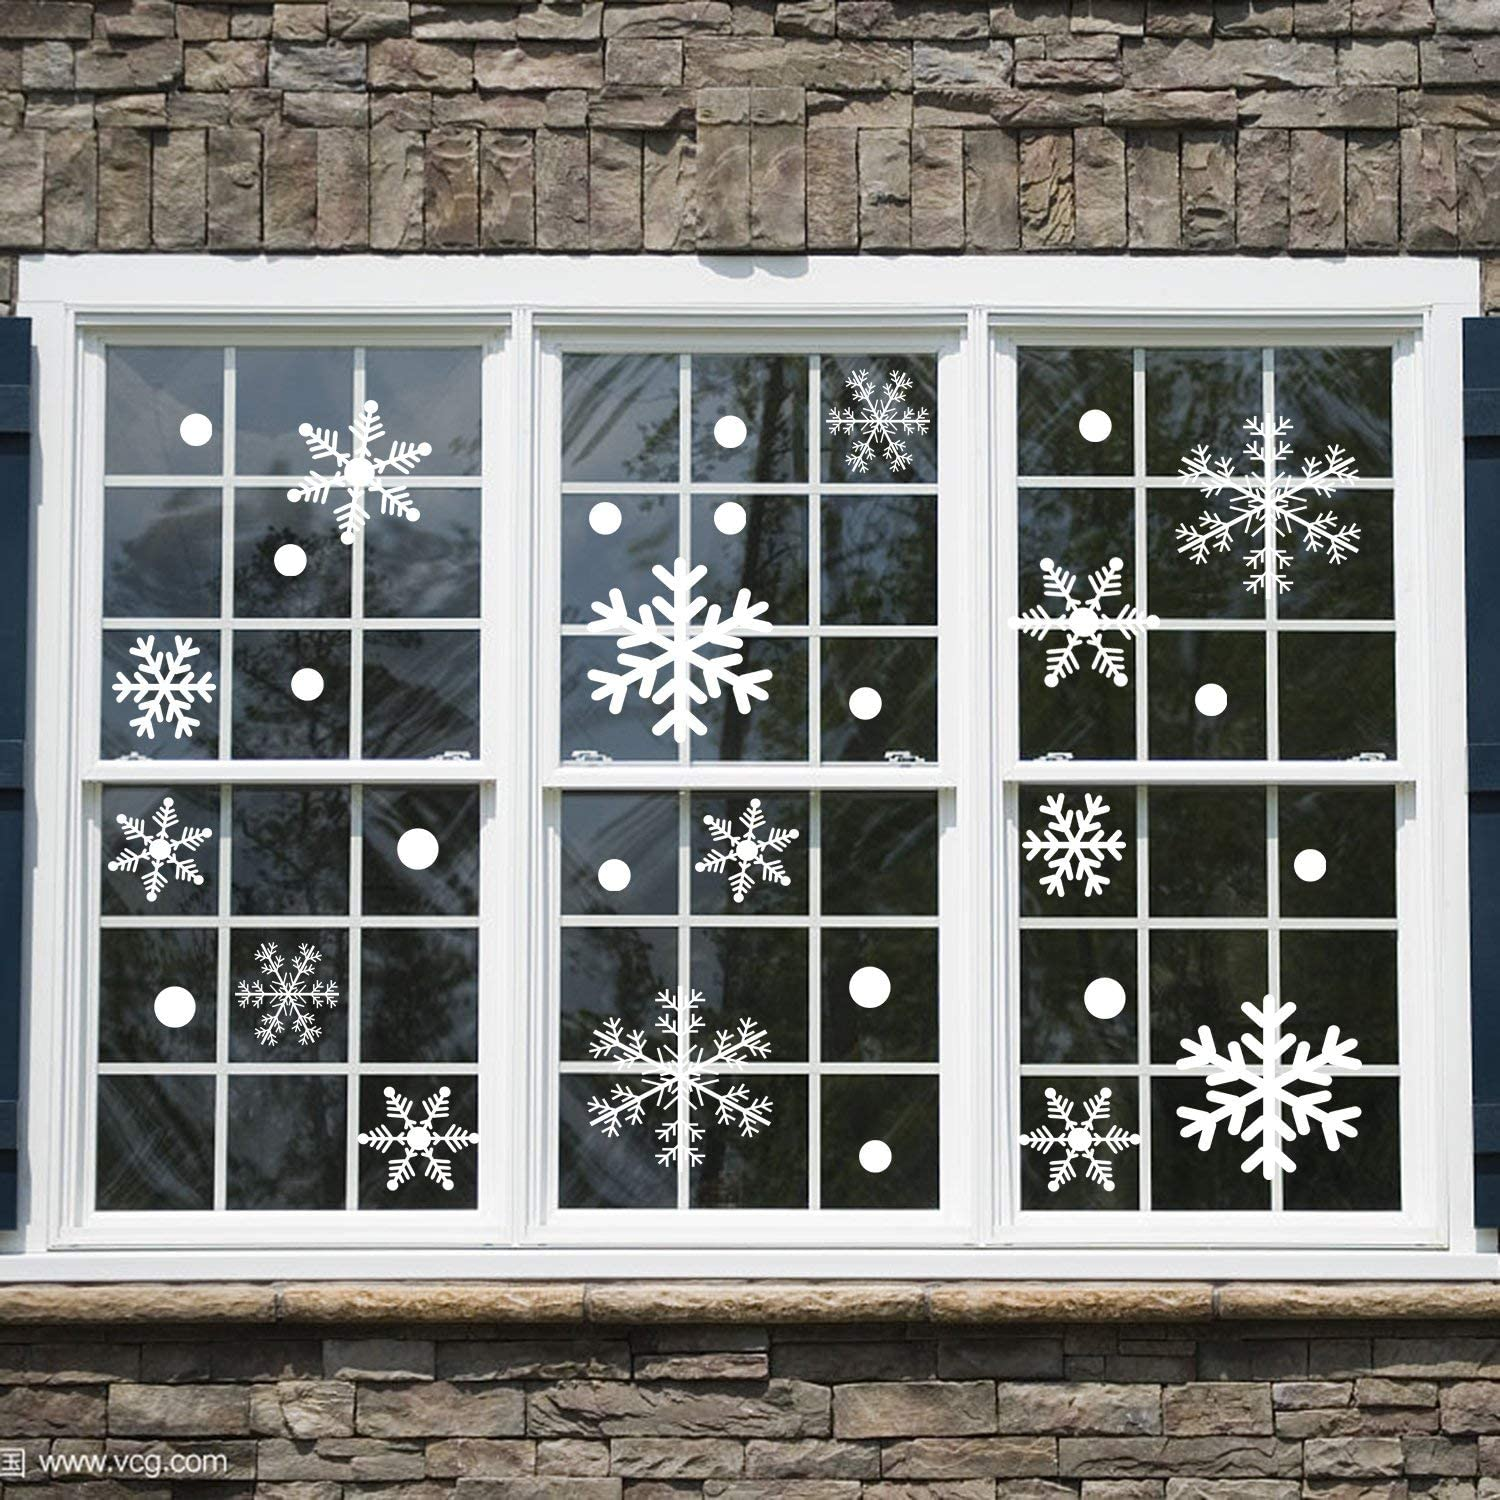 Christmas Decorations Christmas Window Clings Snowflake Decorations Snowflake Window Clings White Snowflake Stickers Ornaments for Christmas Window Decor Supply-150 PCS